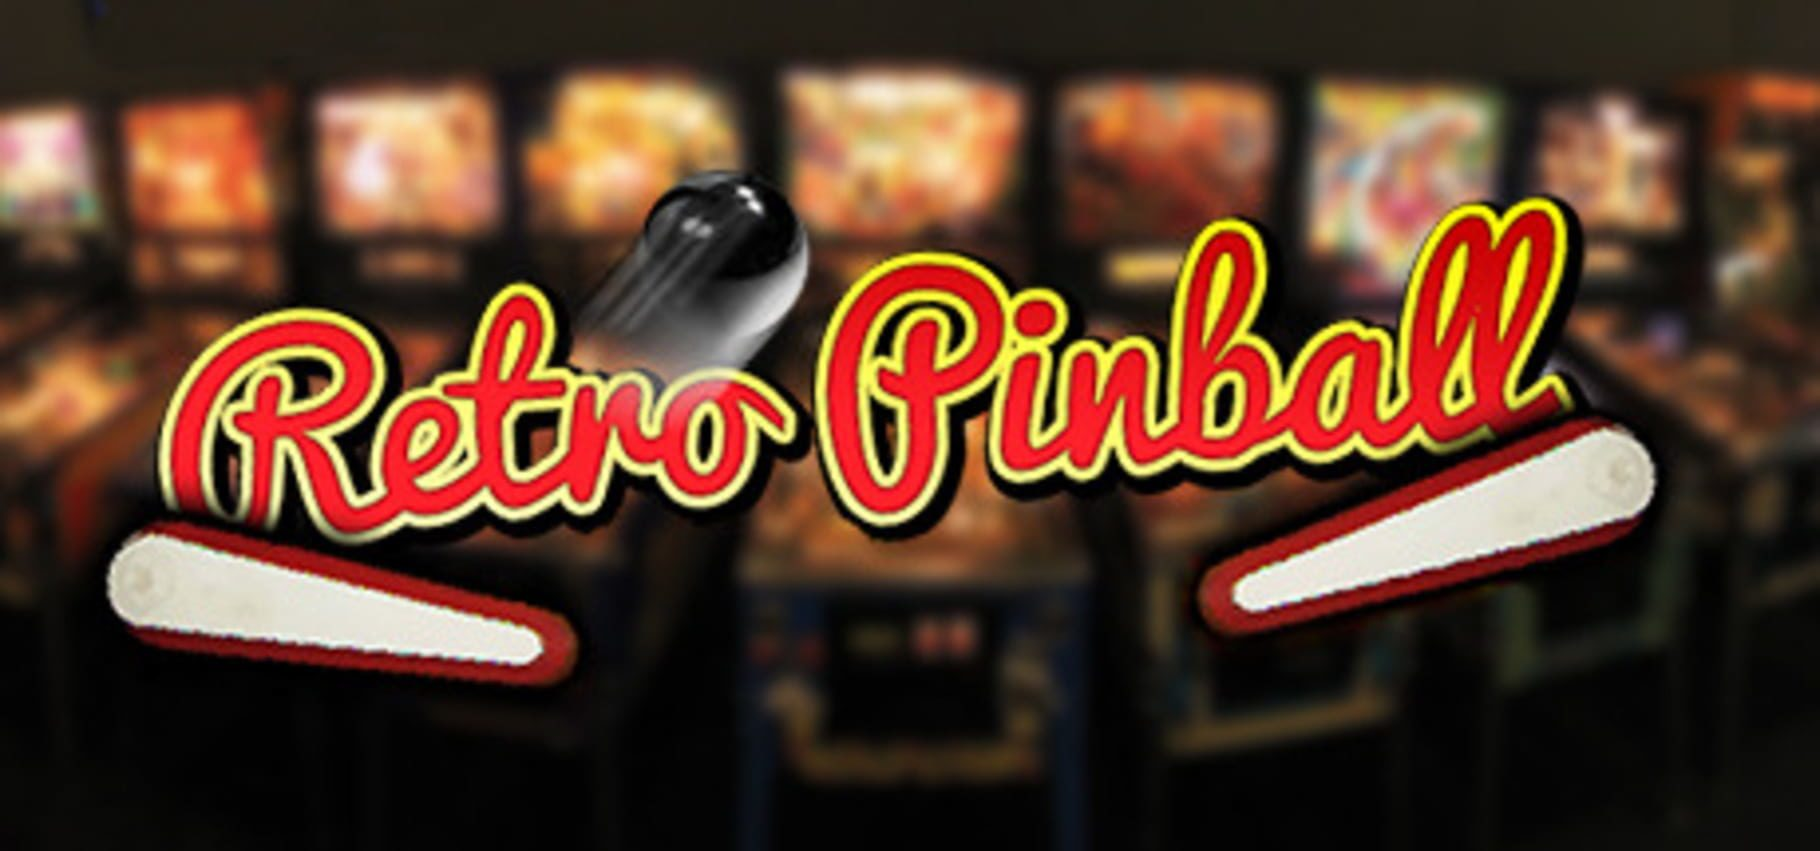 buy Retro Pinball cd key for all platform